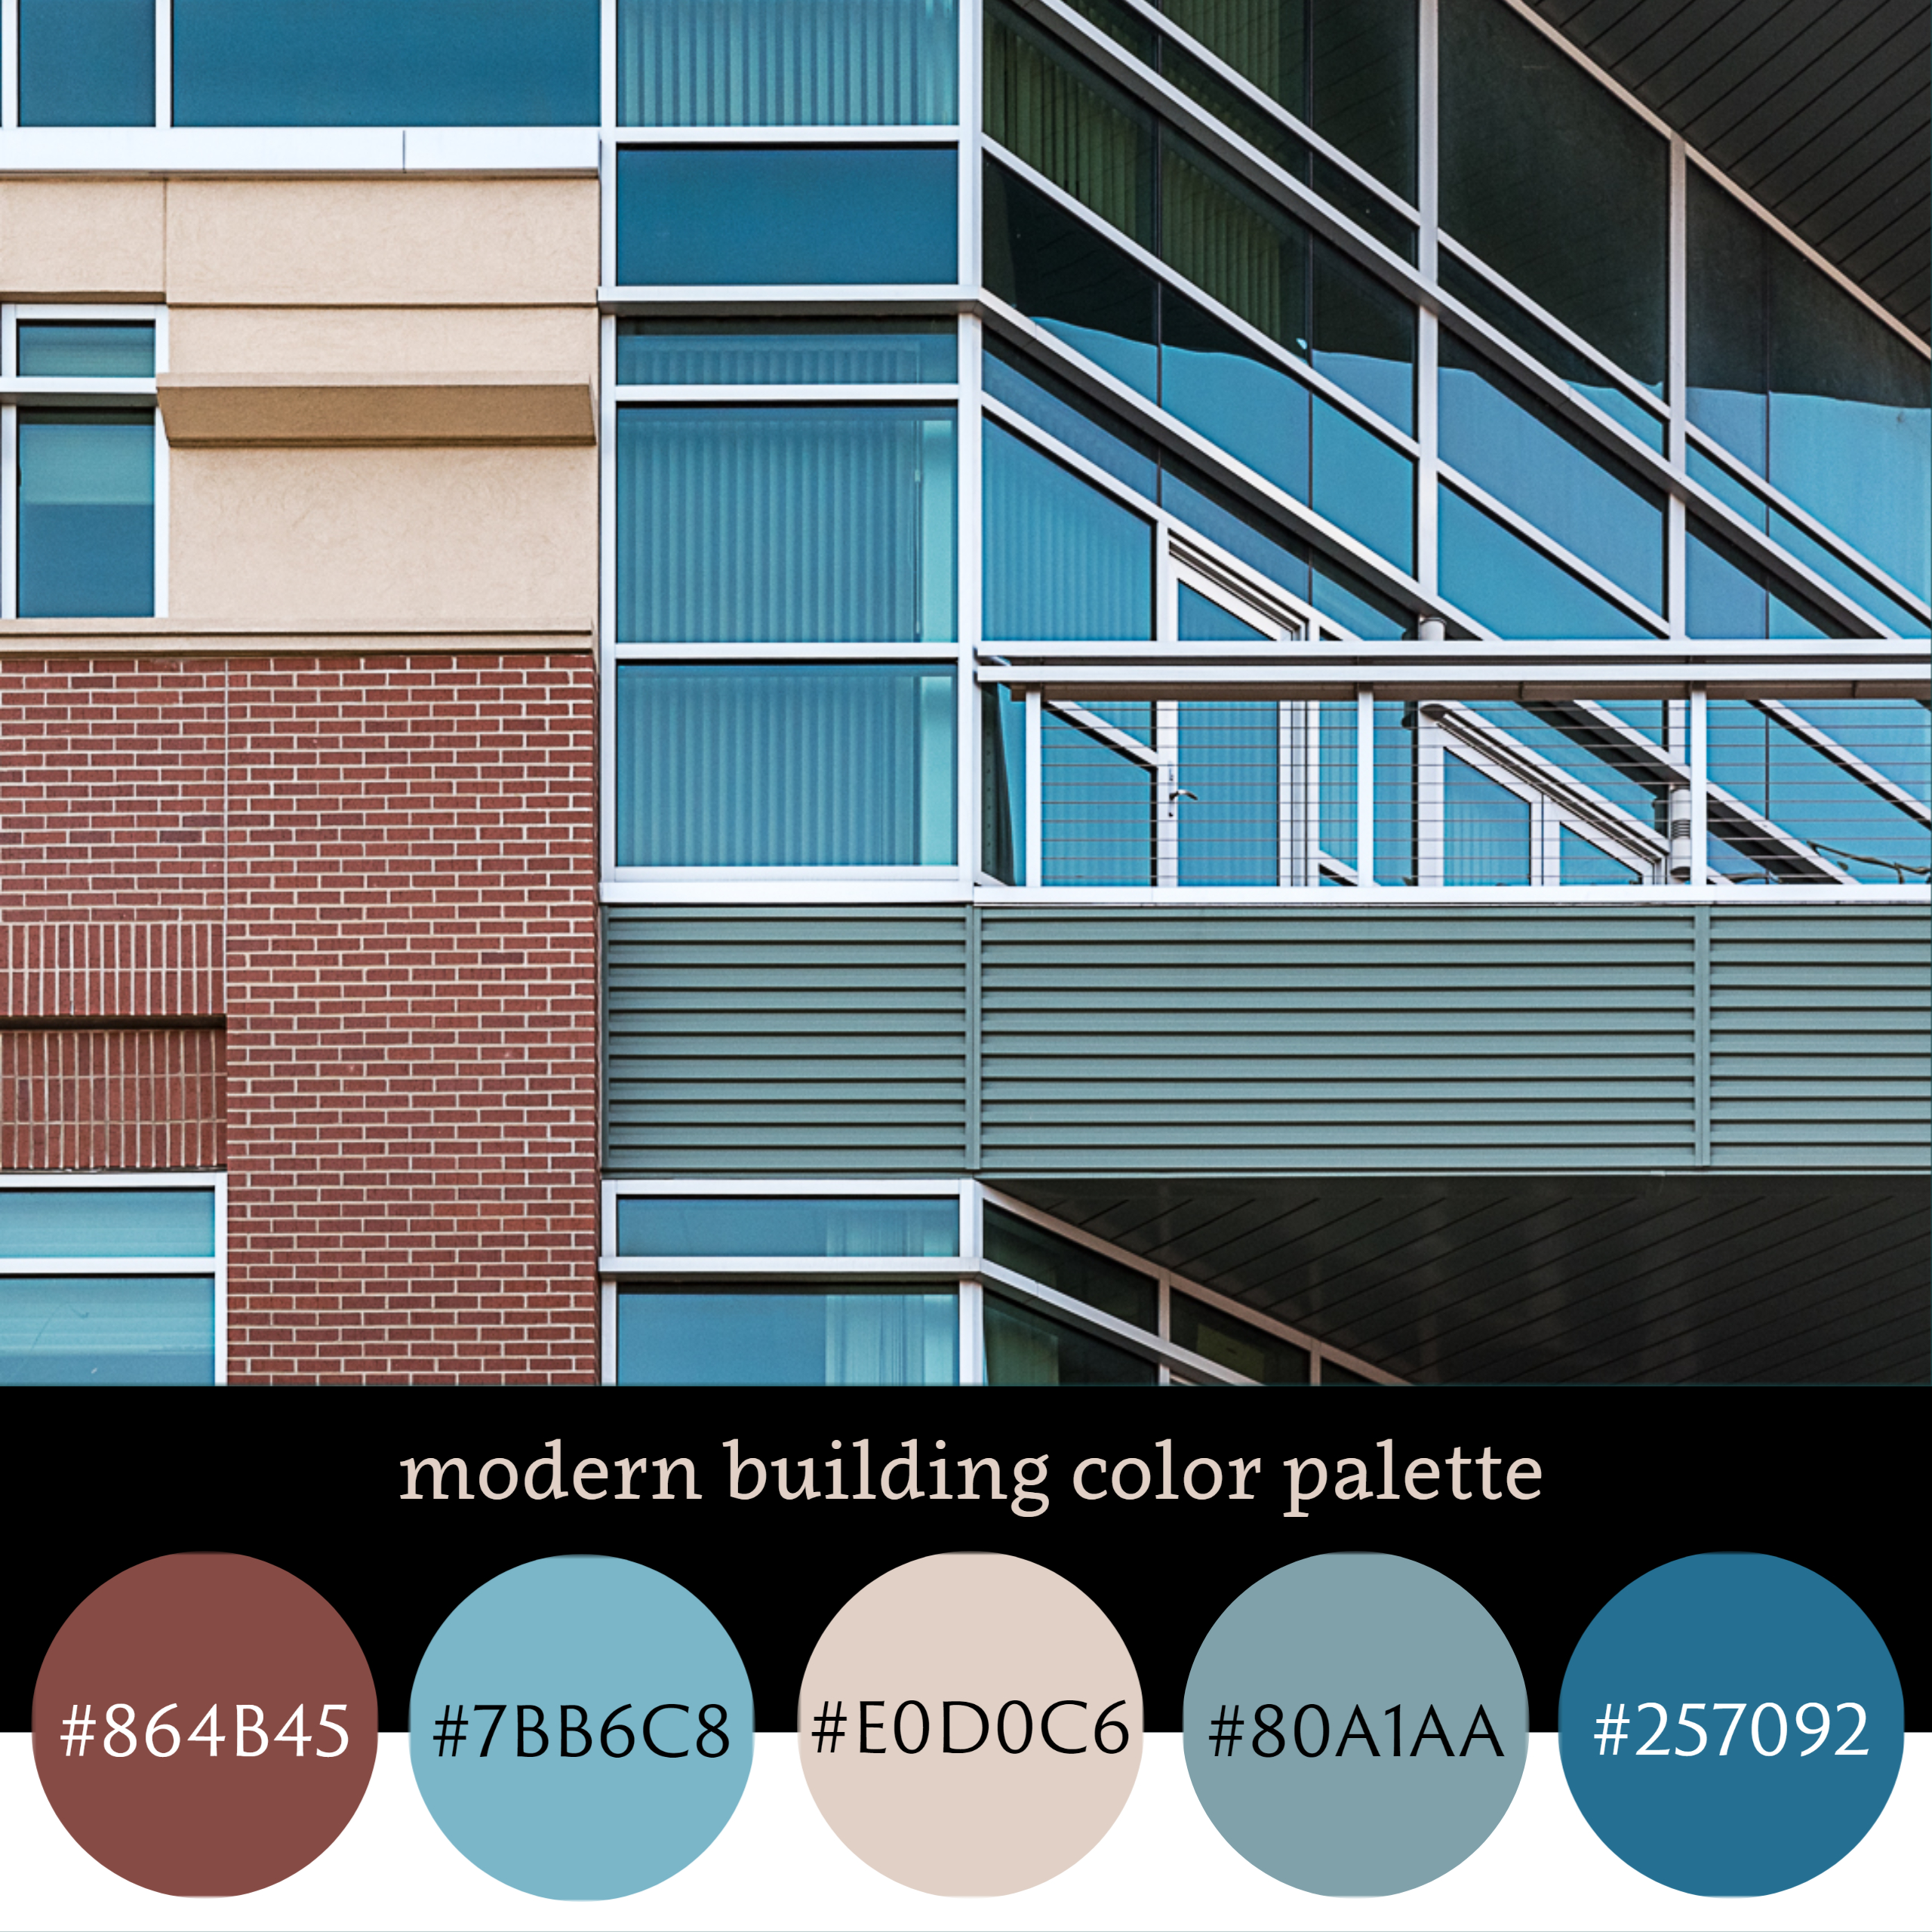 Modern Building Color Palette